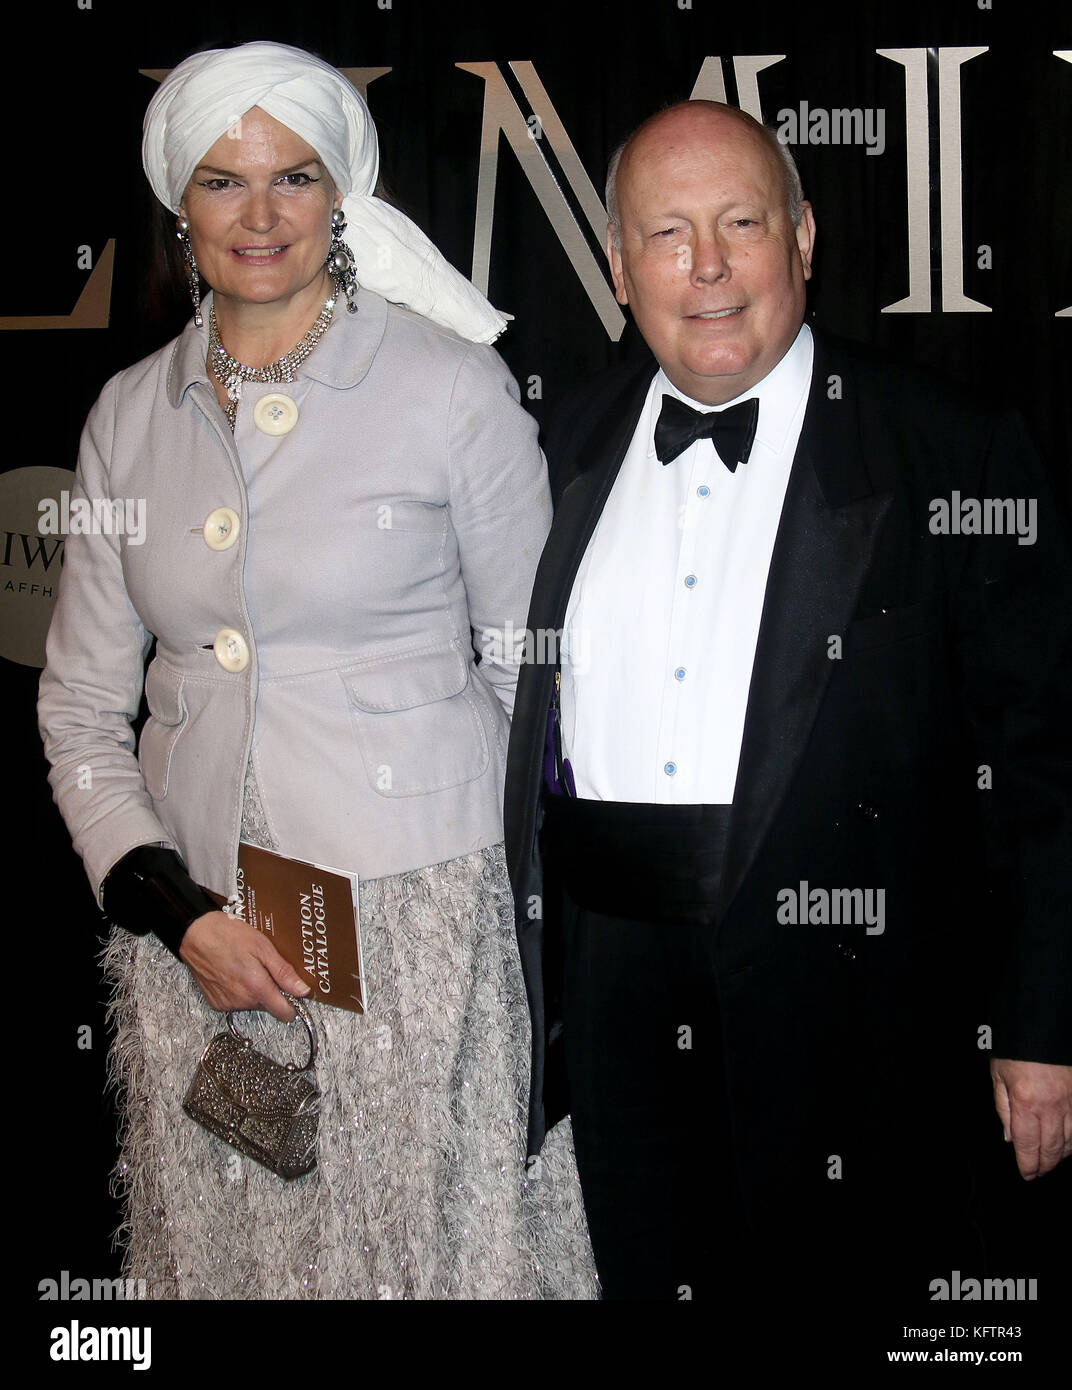 Lord Julian Fellowes High Resolution Stock Photography and Images ...